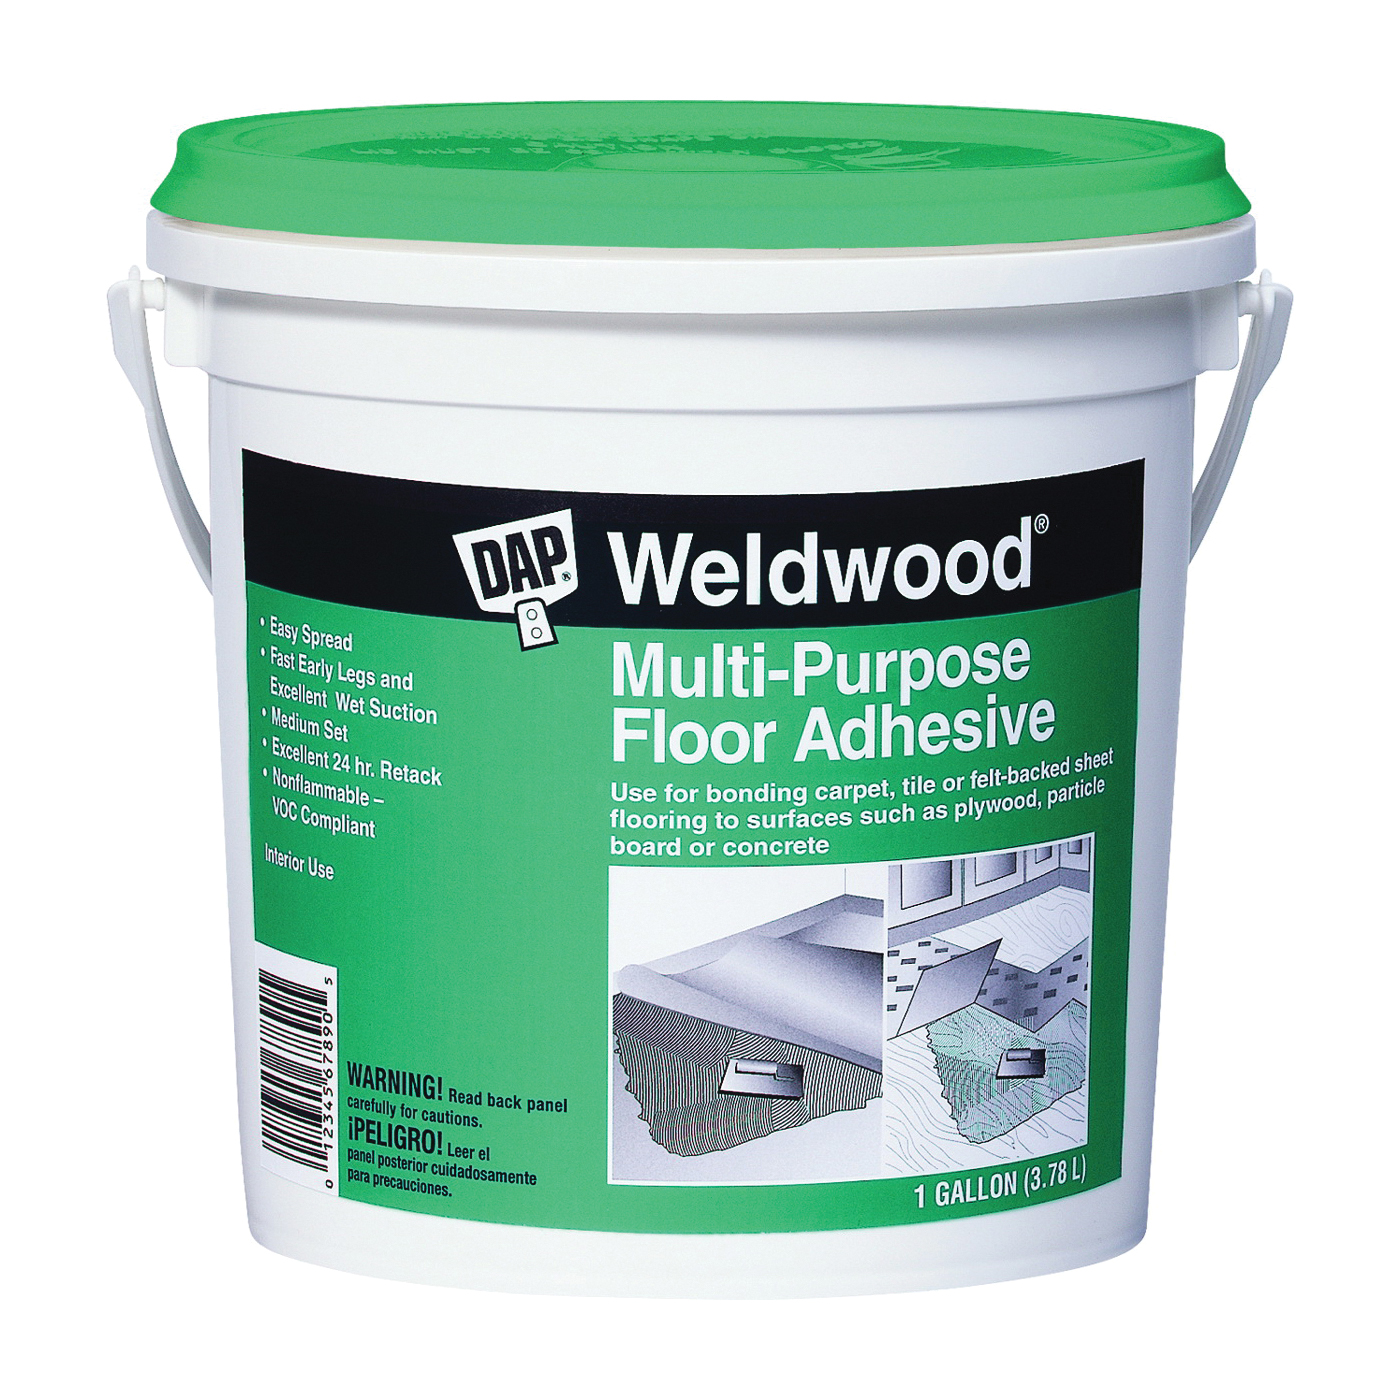 Picture of DAP Weldwood 00142 Floor Adhesive, Paste, Slight, Off-White, 1 gal Package, Pail